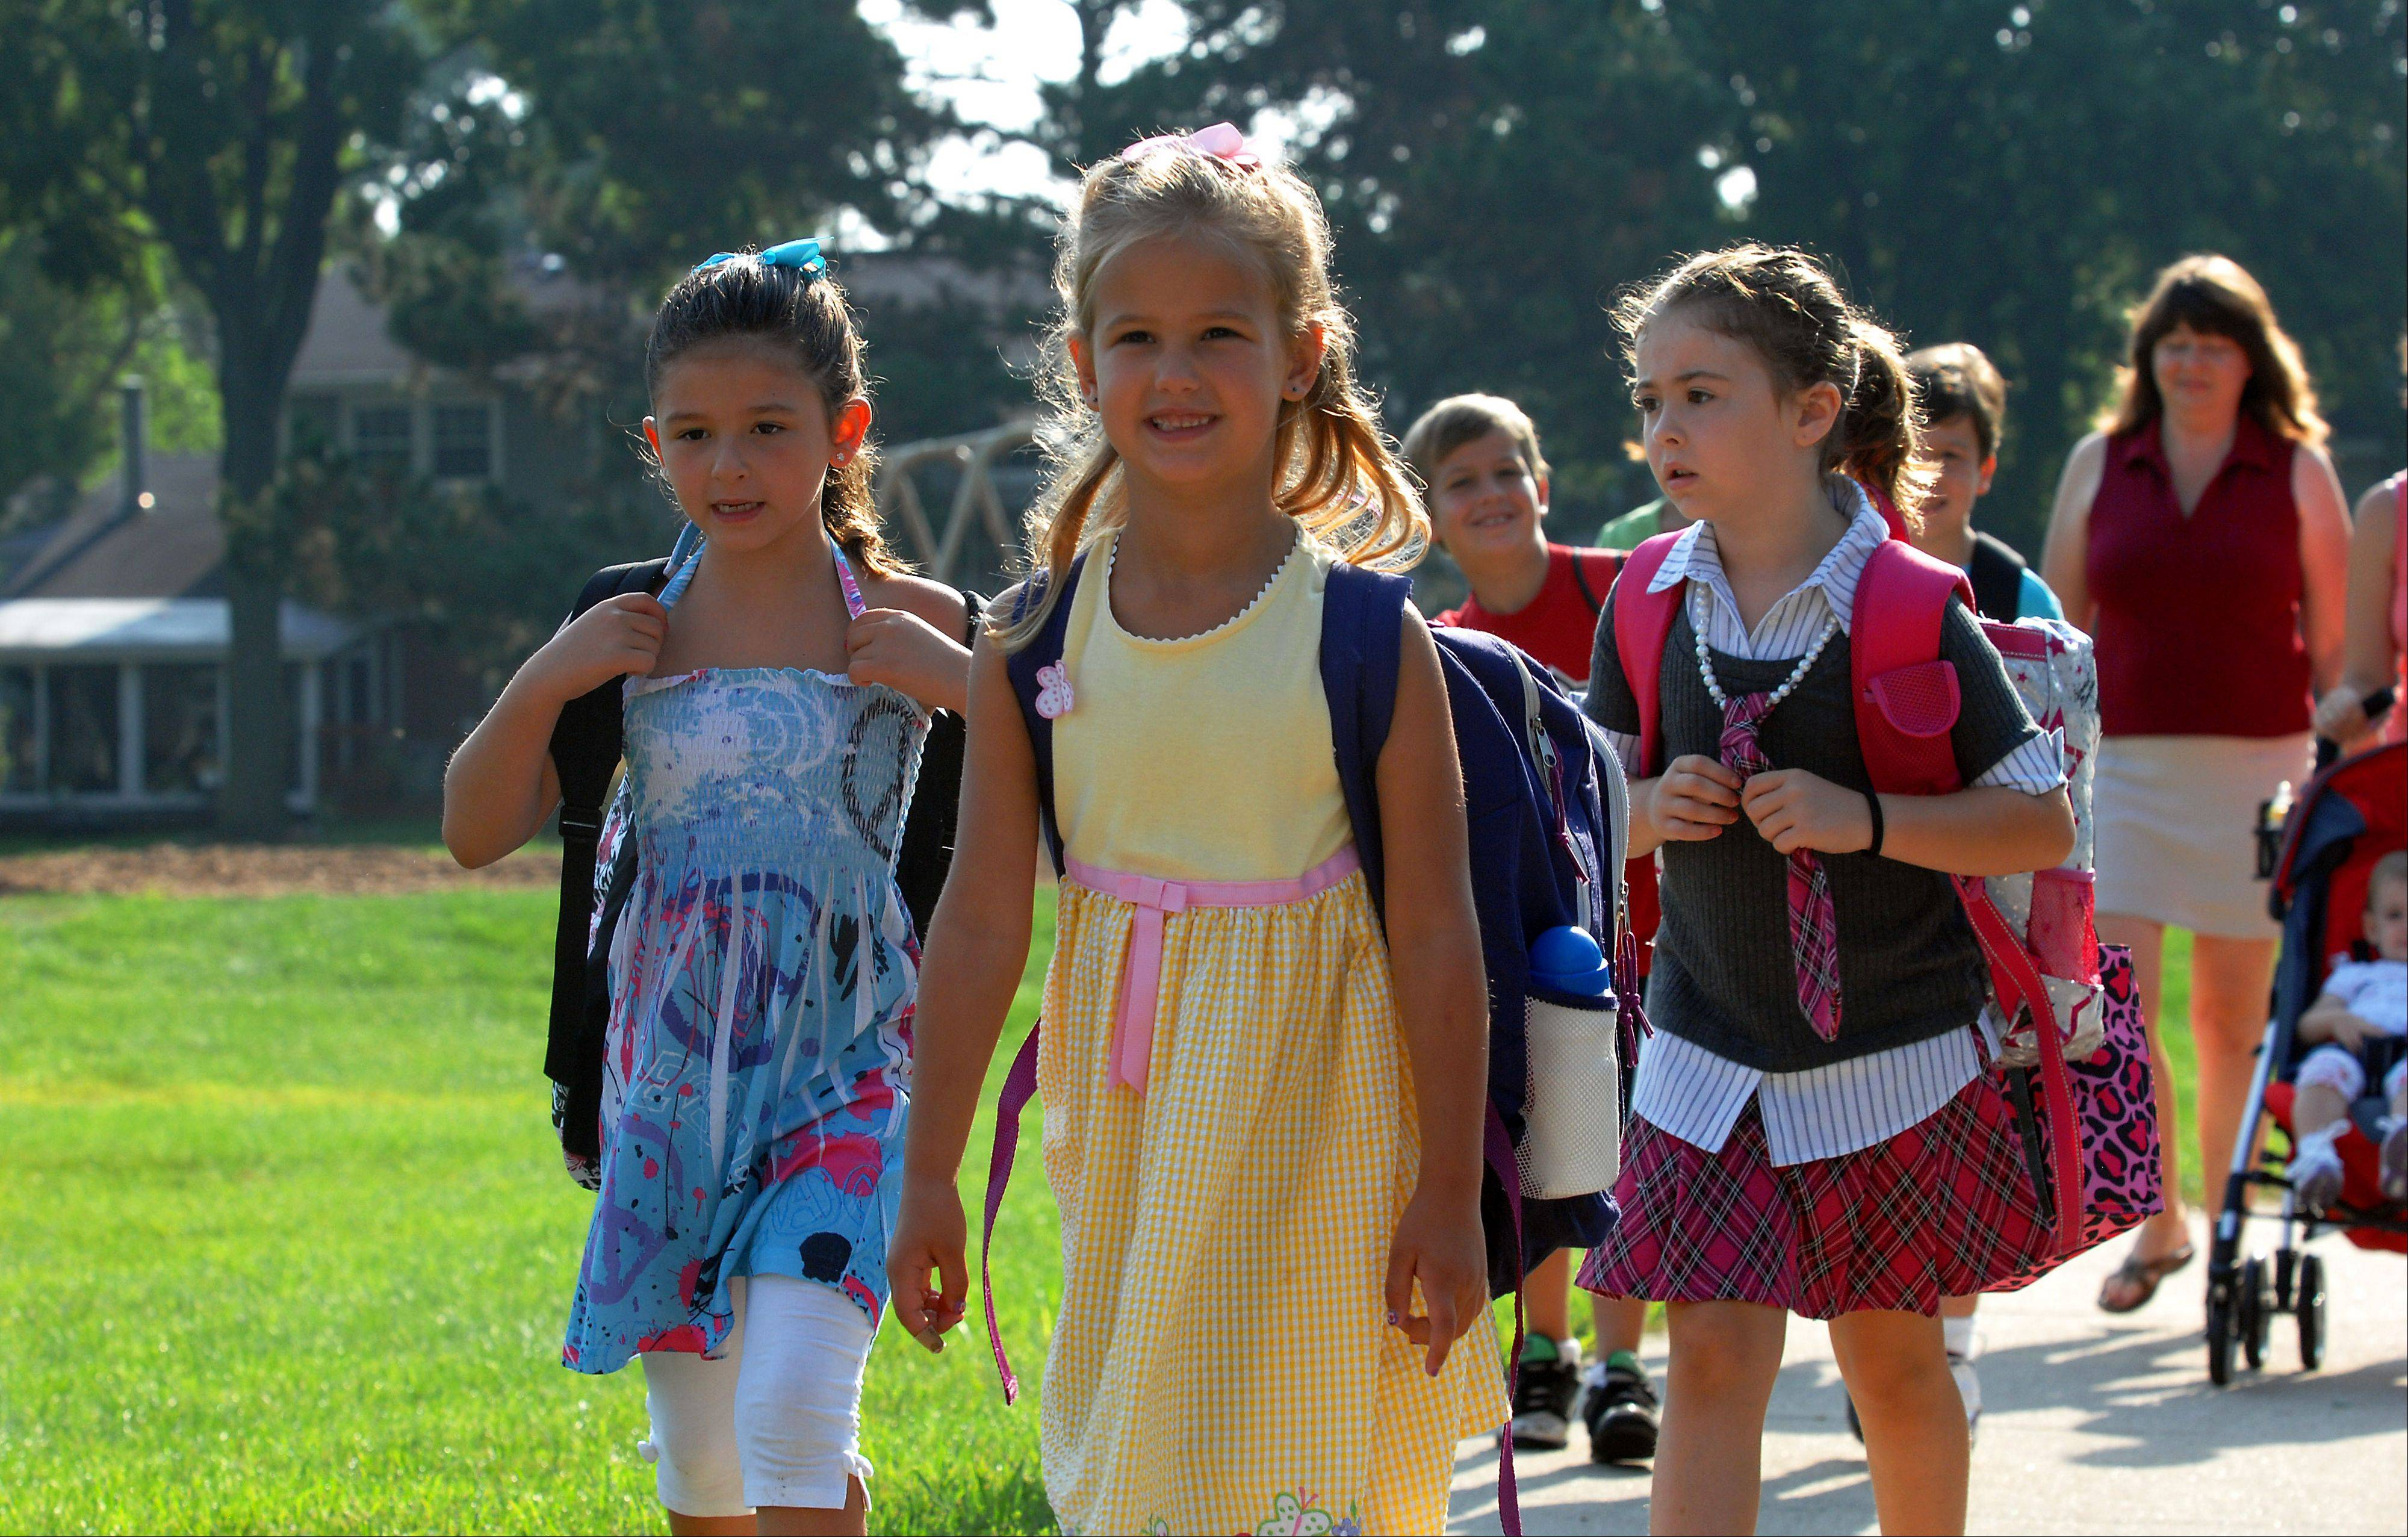 Abby Sprenger, 6, and her friends Gabbi Fontanetta, 7, left and Viktoria Velikova, 7, head to their first day of class at Salt Creek Elementary School in Elk Grove Village on Wednesday.